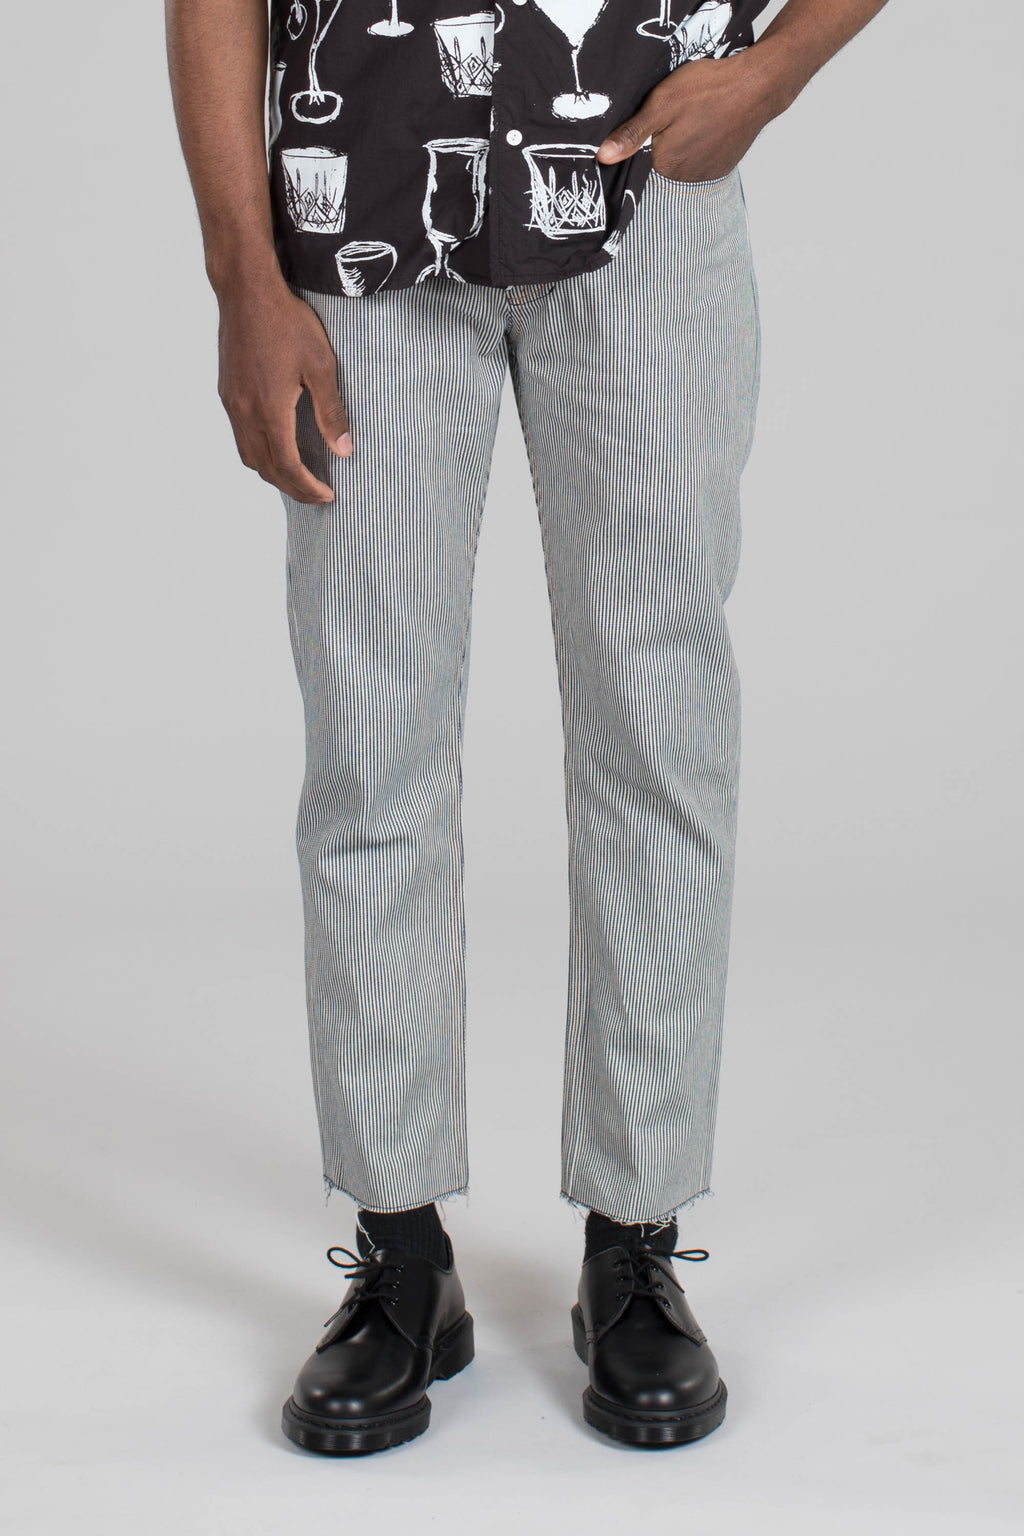 5Pkt Cropped Pant - Railroad